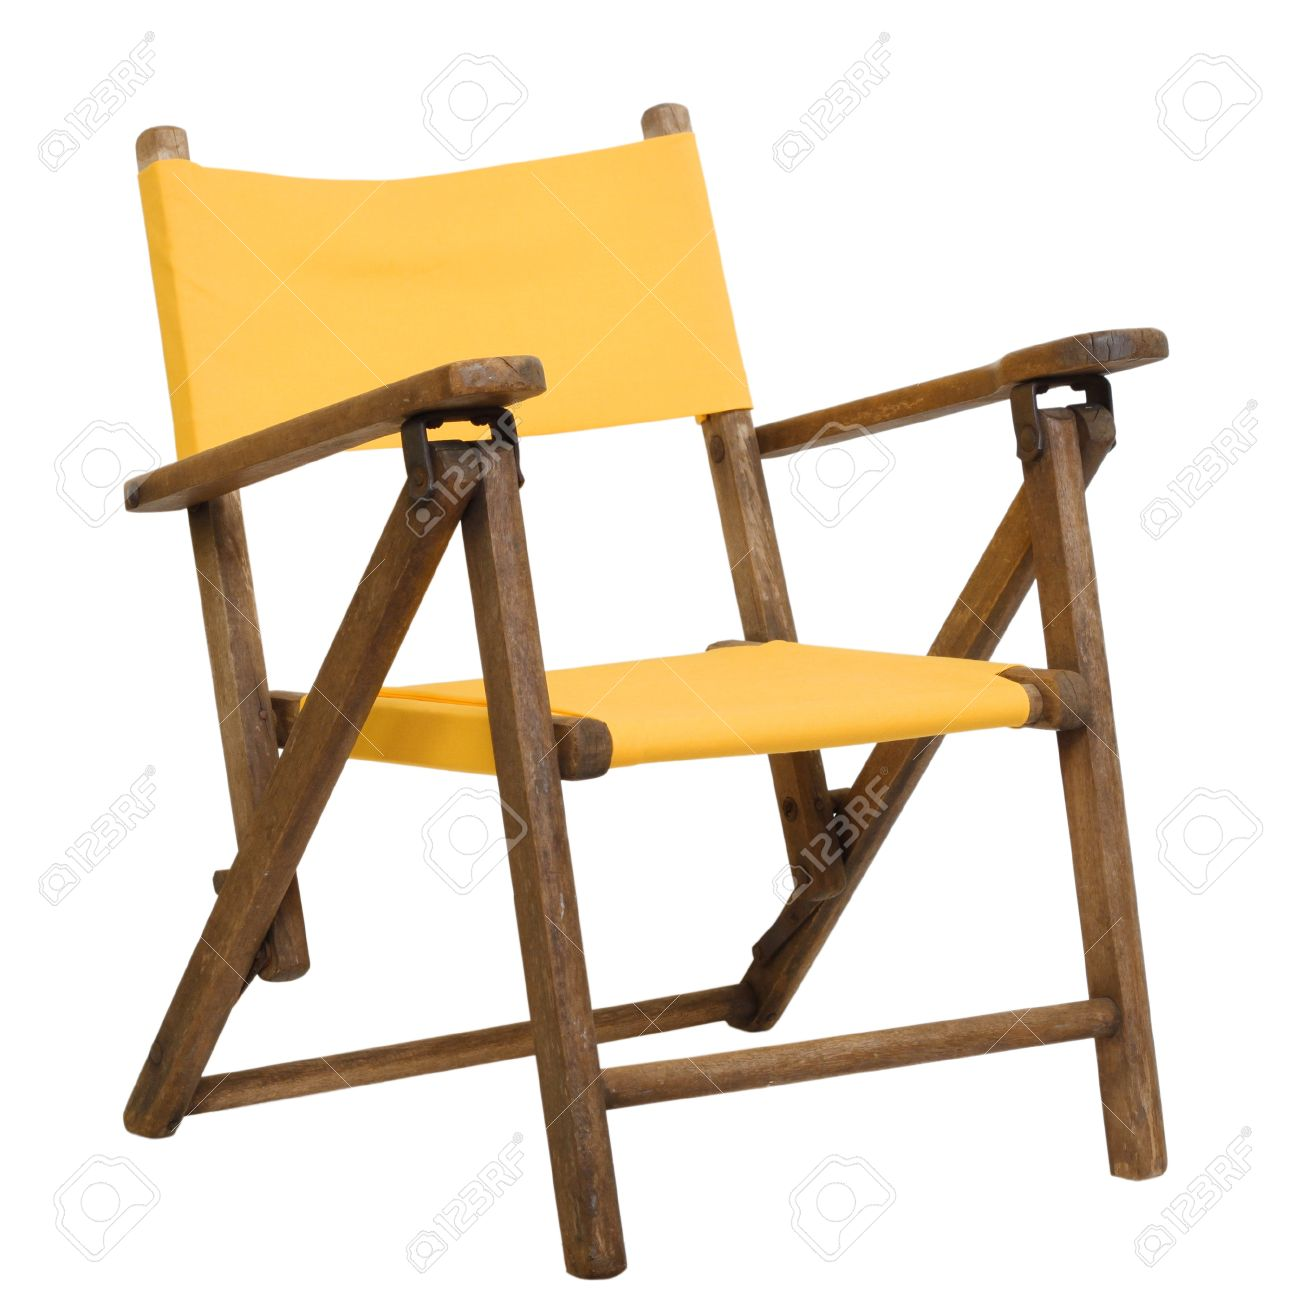 Antique Folding Canvas Childrens Lawn Chair In Bright Yellow Stock Photo Picture And Royalty Free Image Image 11897875